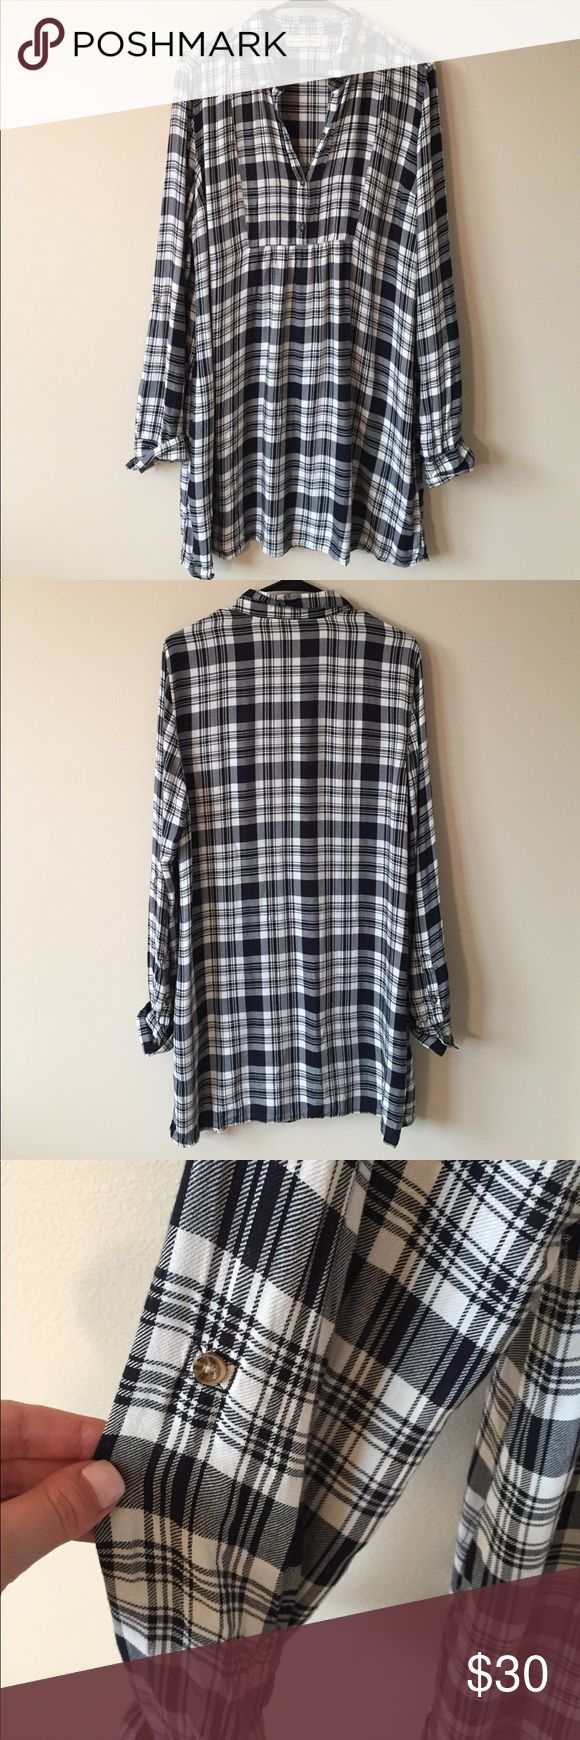 Abercrombie and Fitch Plaid Dress Excellent condition! Soft viscose fabric. Black and White Plaid. Buttons at bust. Length: 34 inches. Armpit to Armpit: 22 inches. Convertible sleeves. Abercrombie & Fitch Dresses